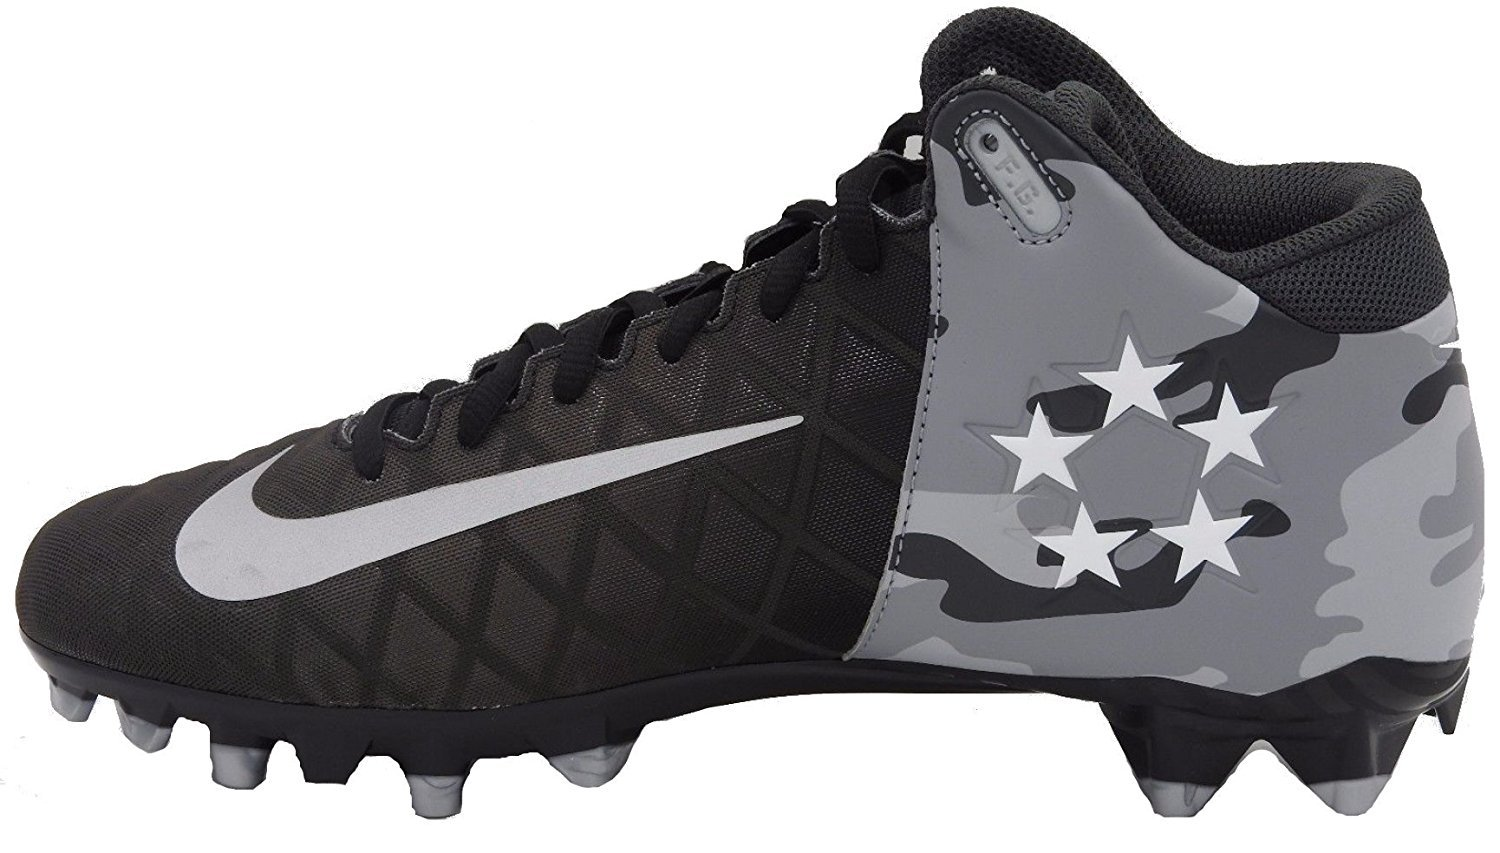 Nike Field General Pro TD Mens Football Cleats 11.5 Black / Camo by NIKE